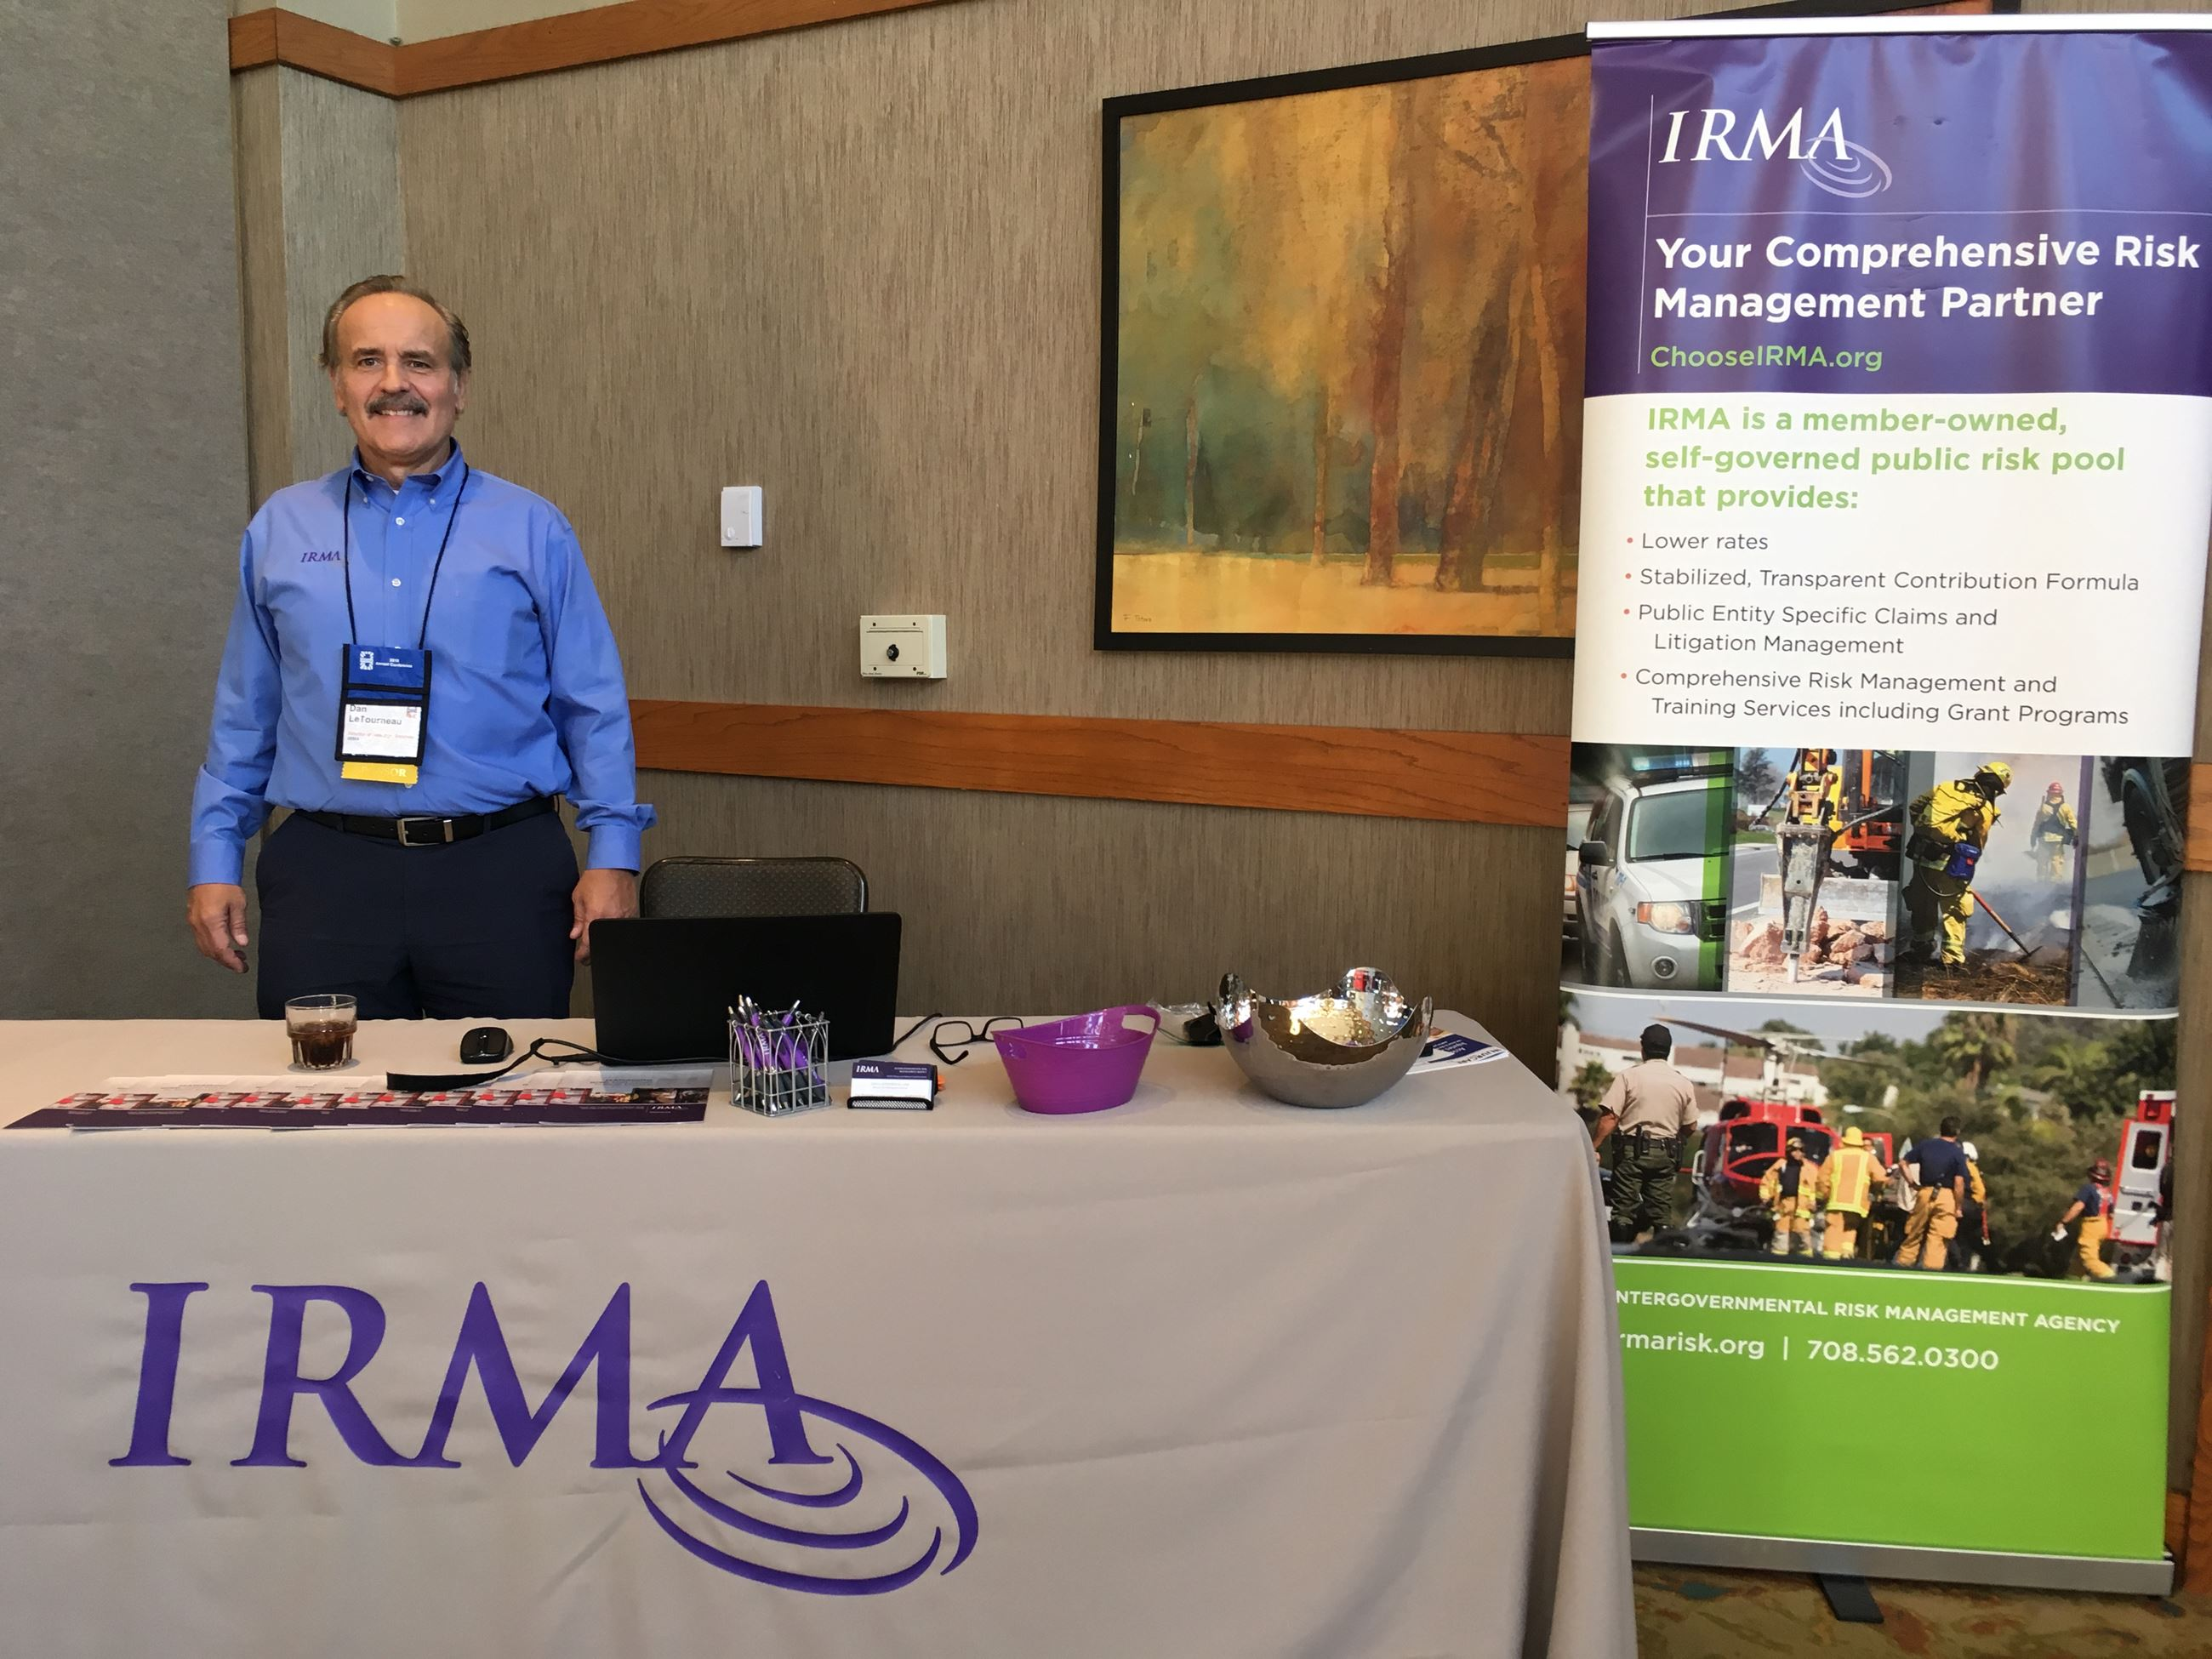 man standing at IRMA sponsor table